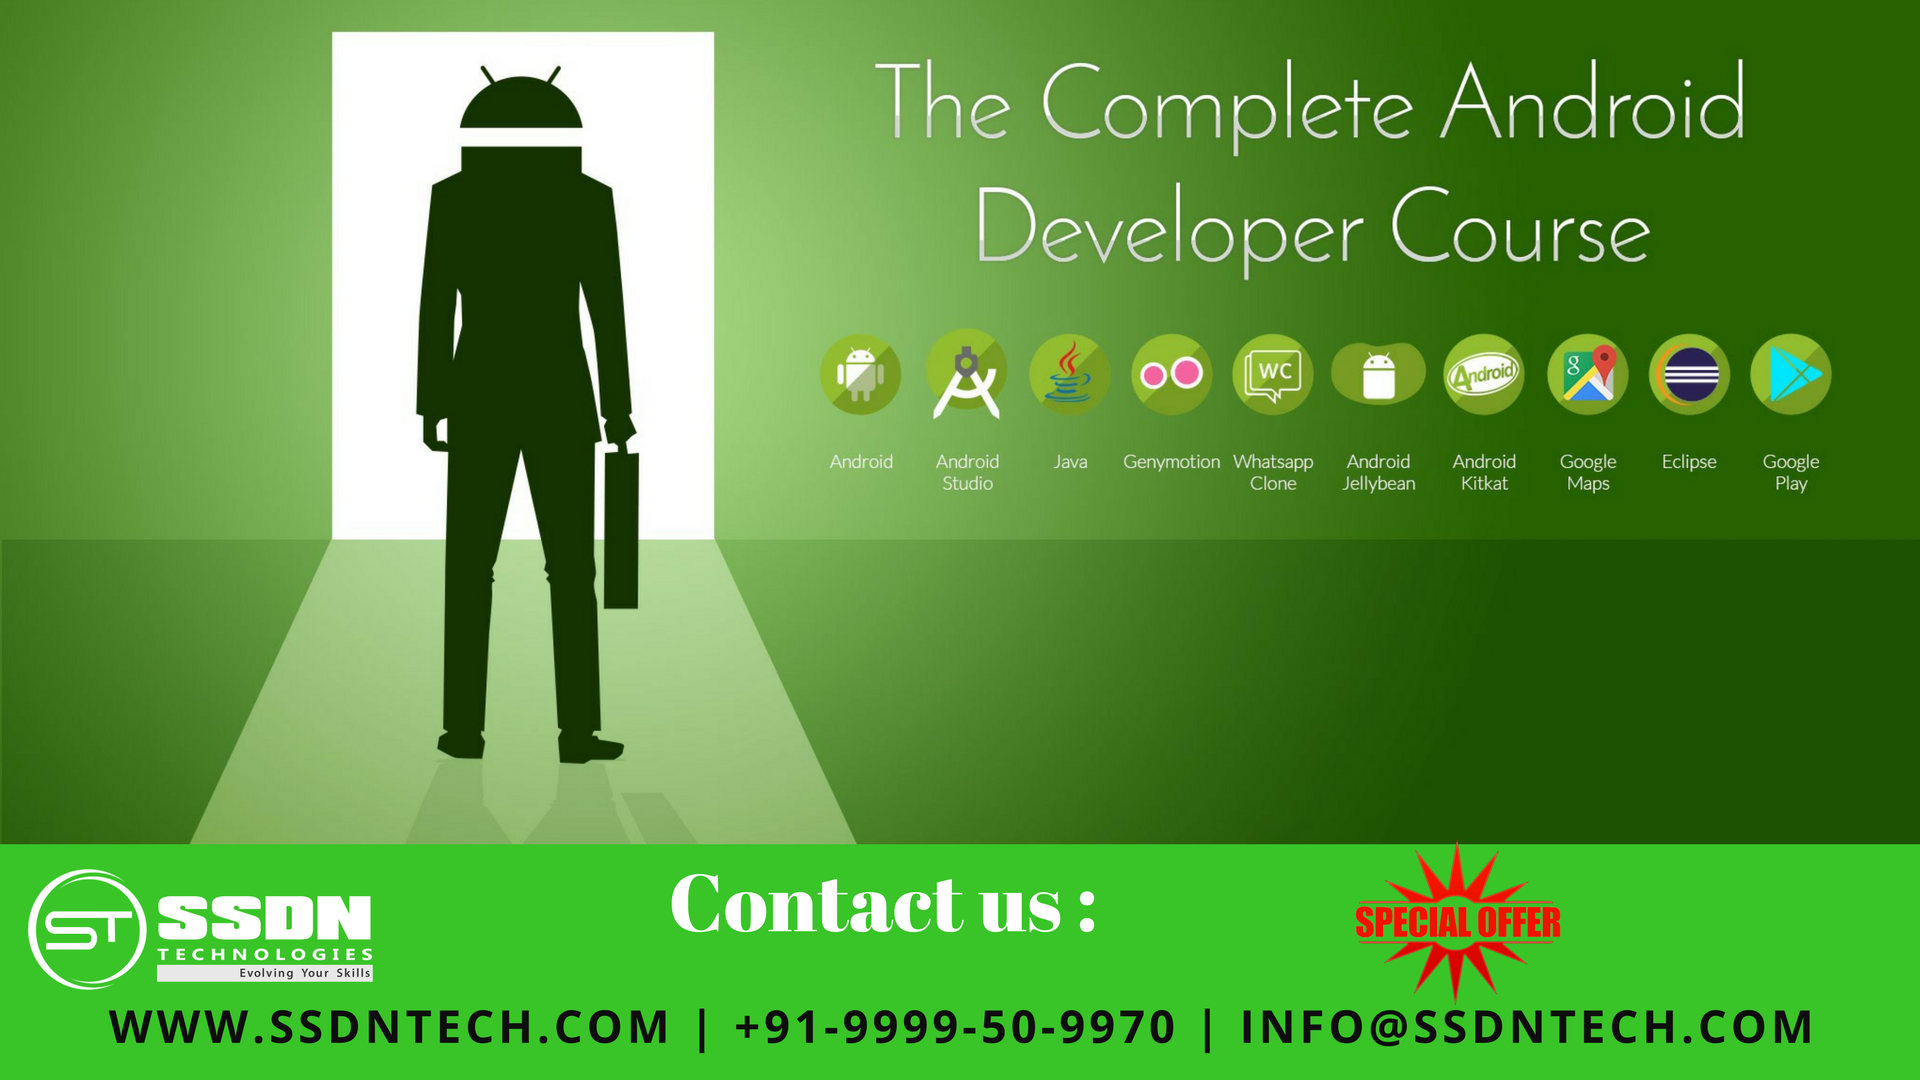 Ssdntech One Leading Class And Corporate Training Provider Company